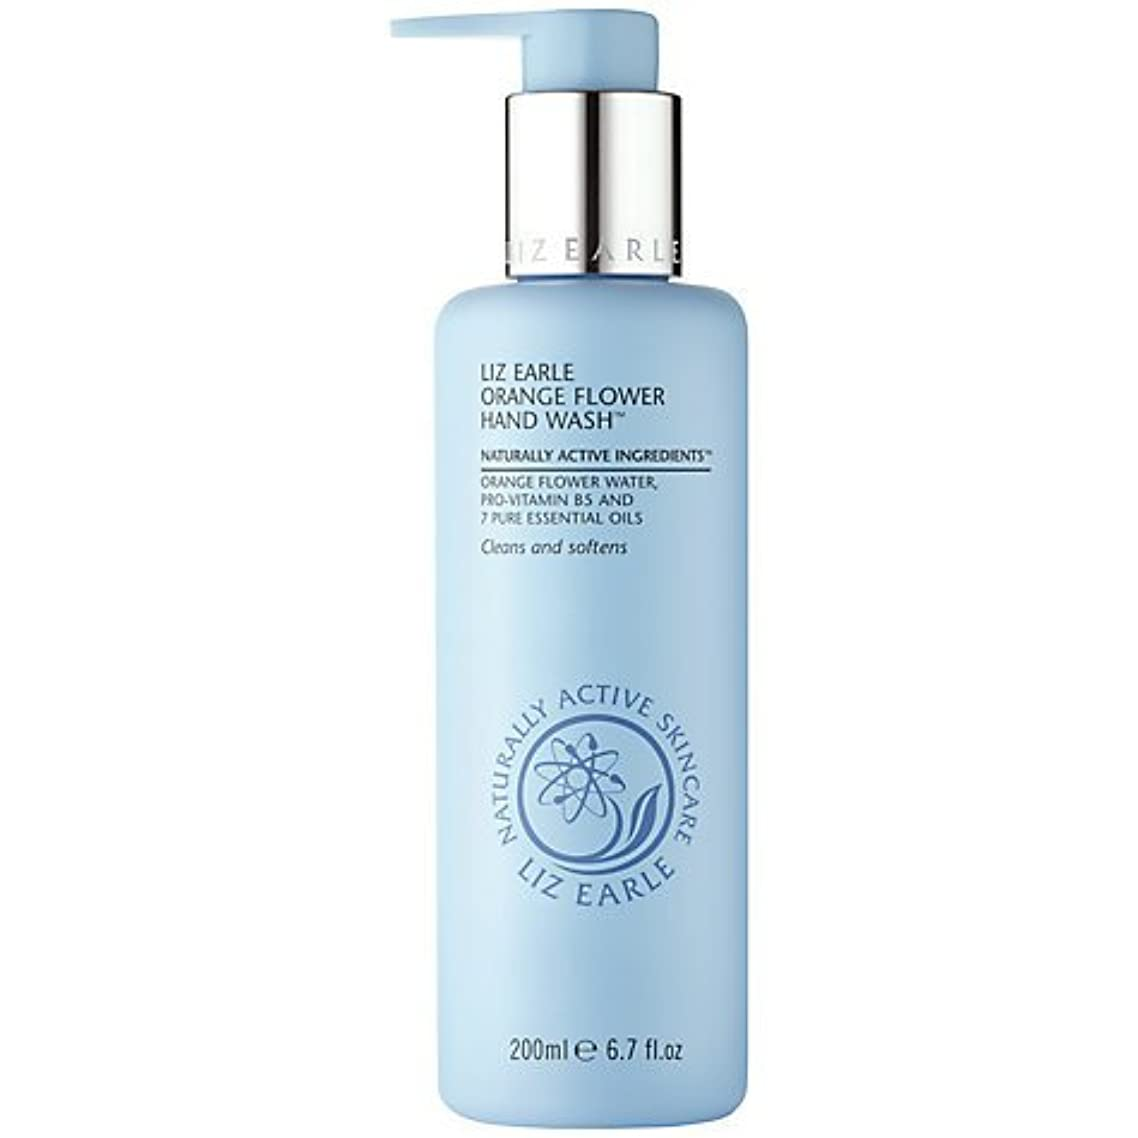 受付急襲取り壊すLiz Earle Orange Flower Hand Wash 200ml by Liz Earle [並行輸入品]